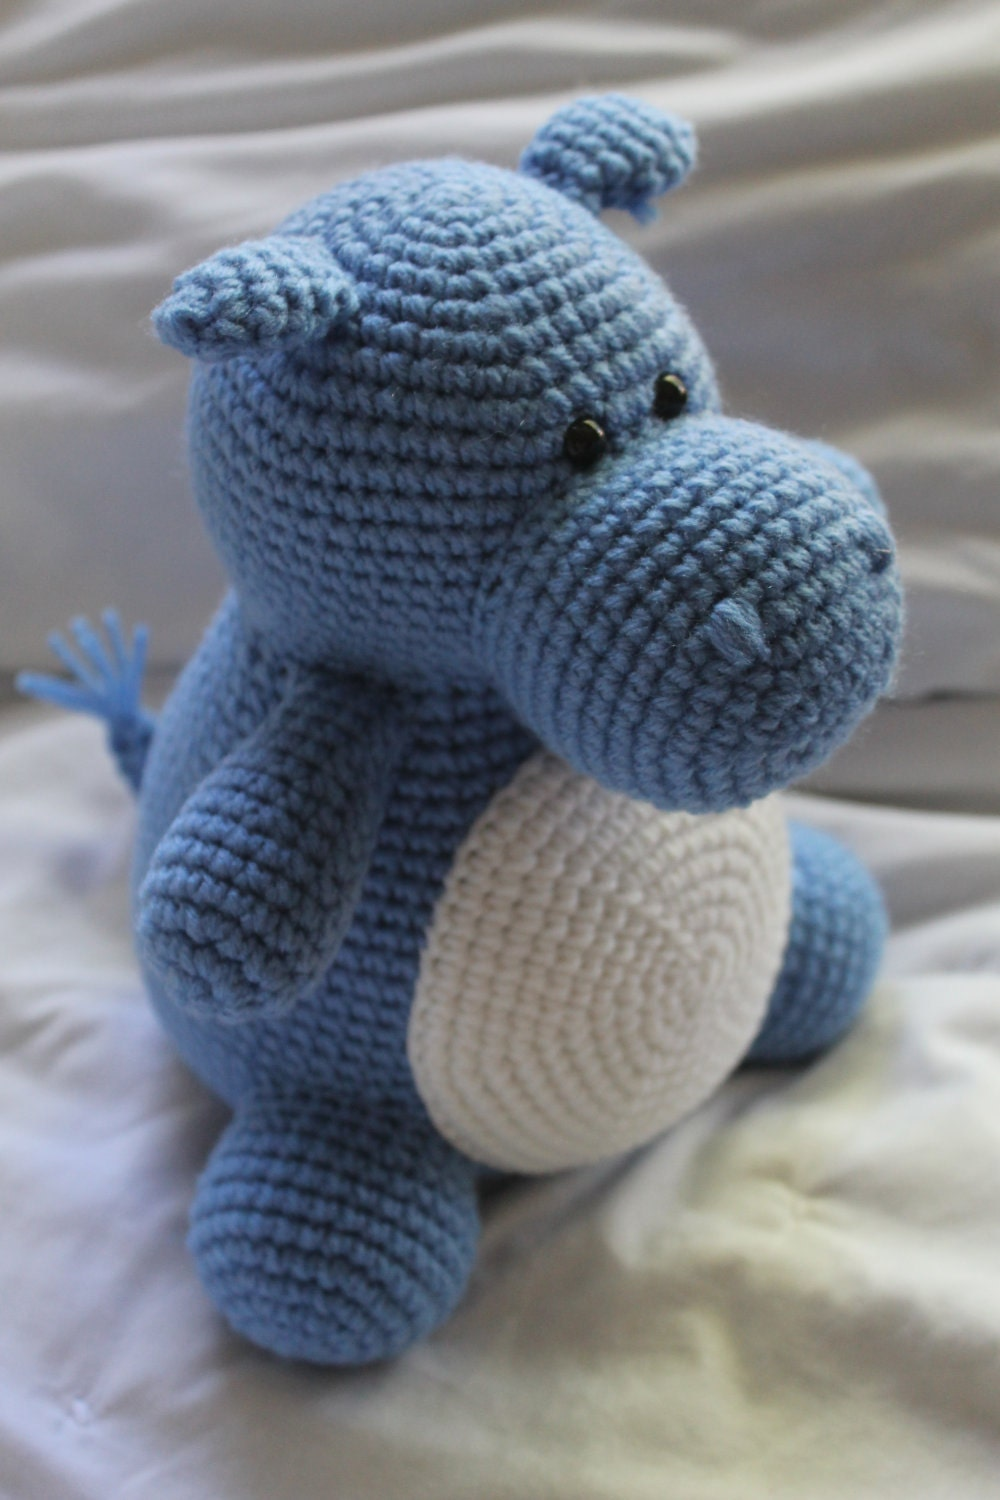 Free Crochet Hexagon Hippo Pattern : Hilda the Hippo Crochet Amigurumi PATTERN ONLY PDF